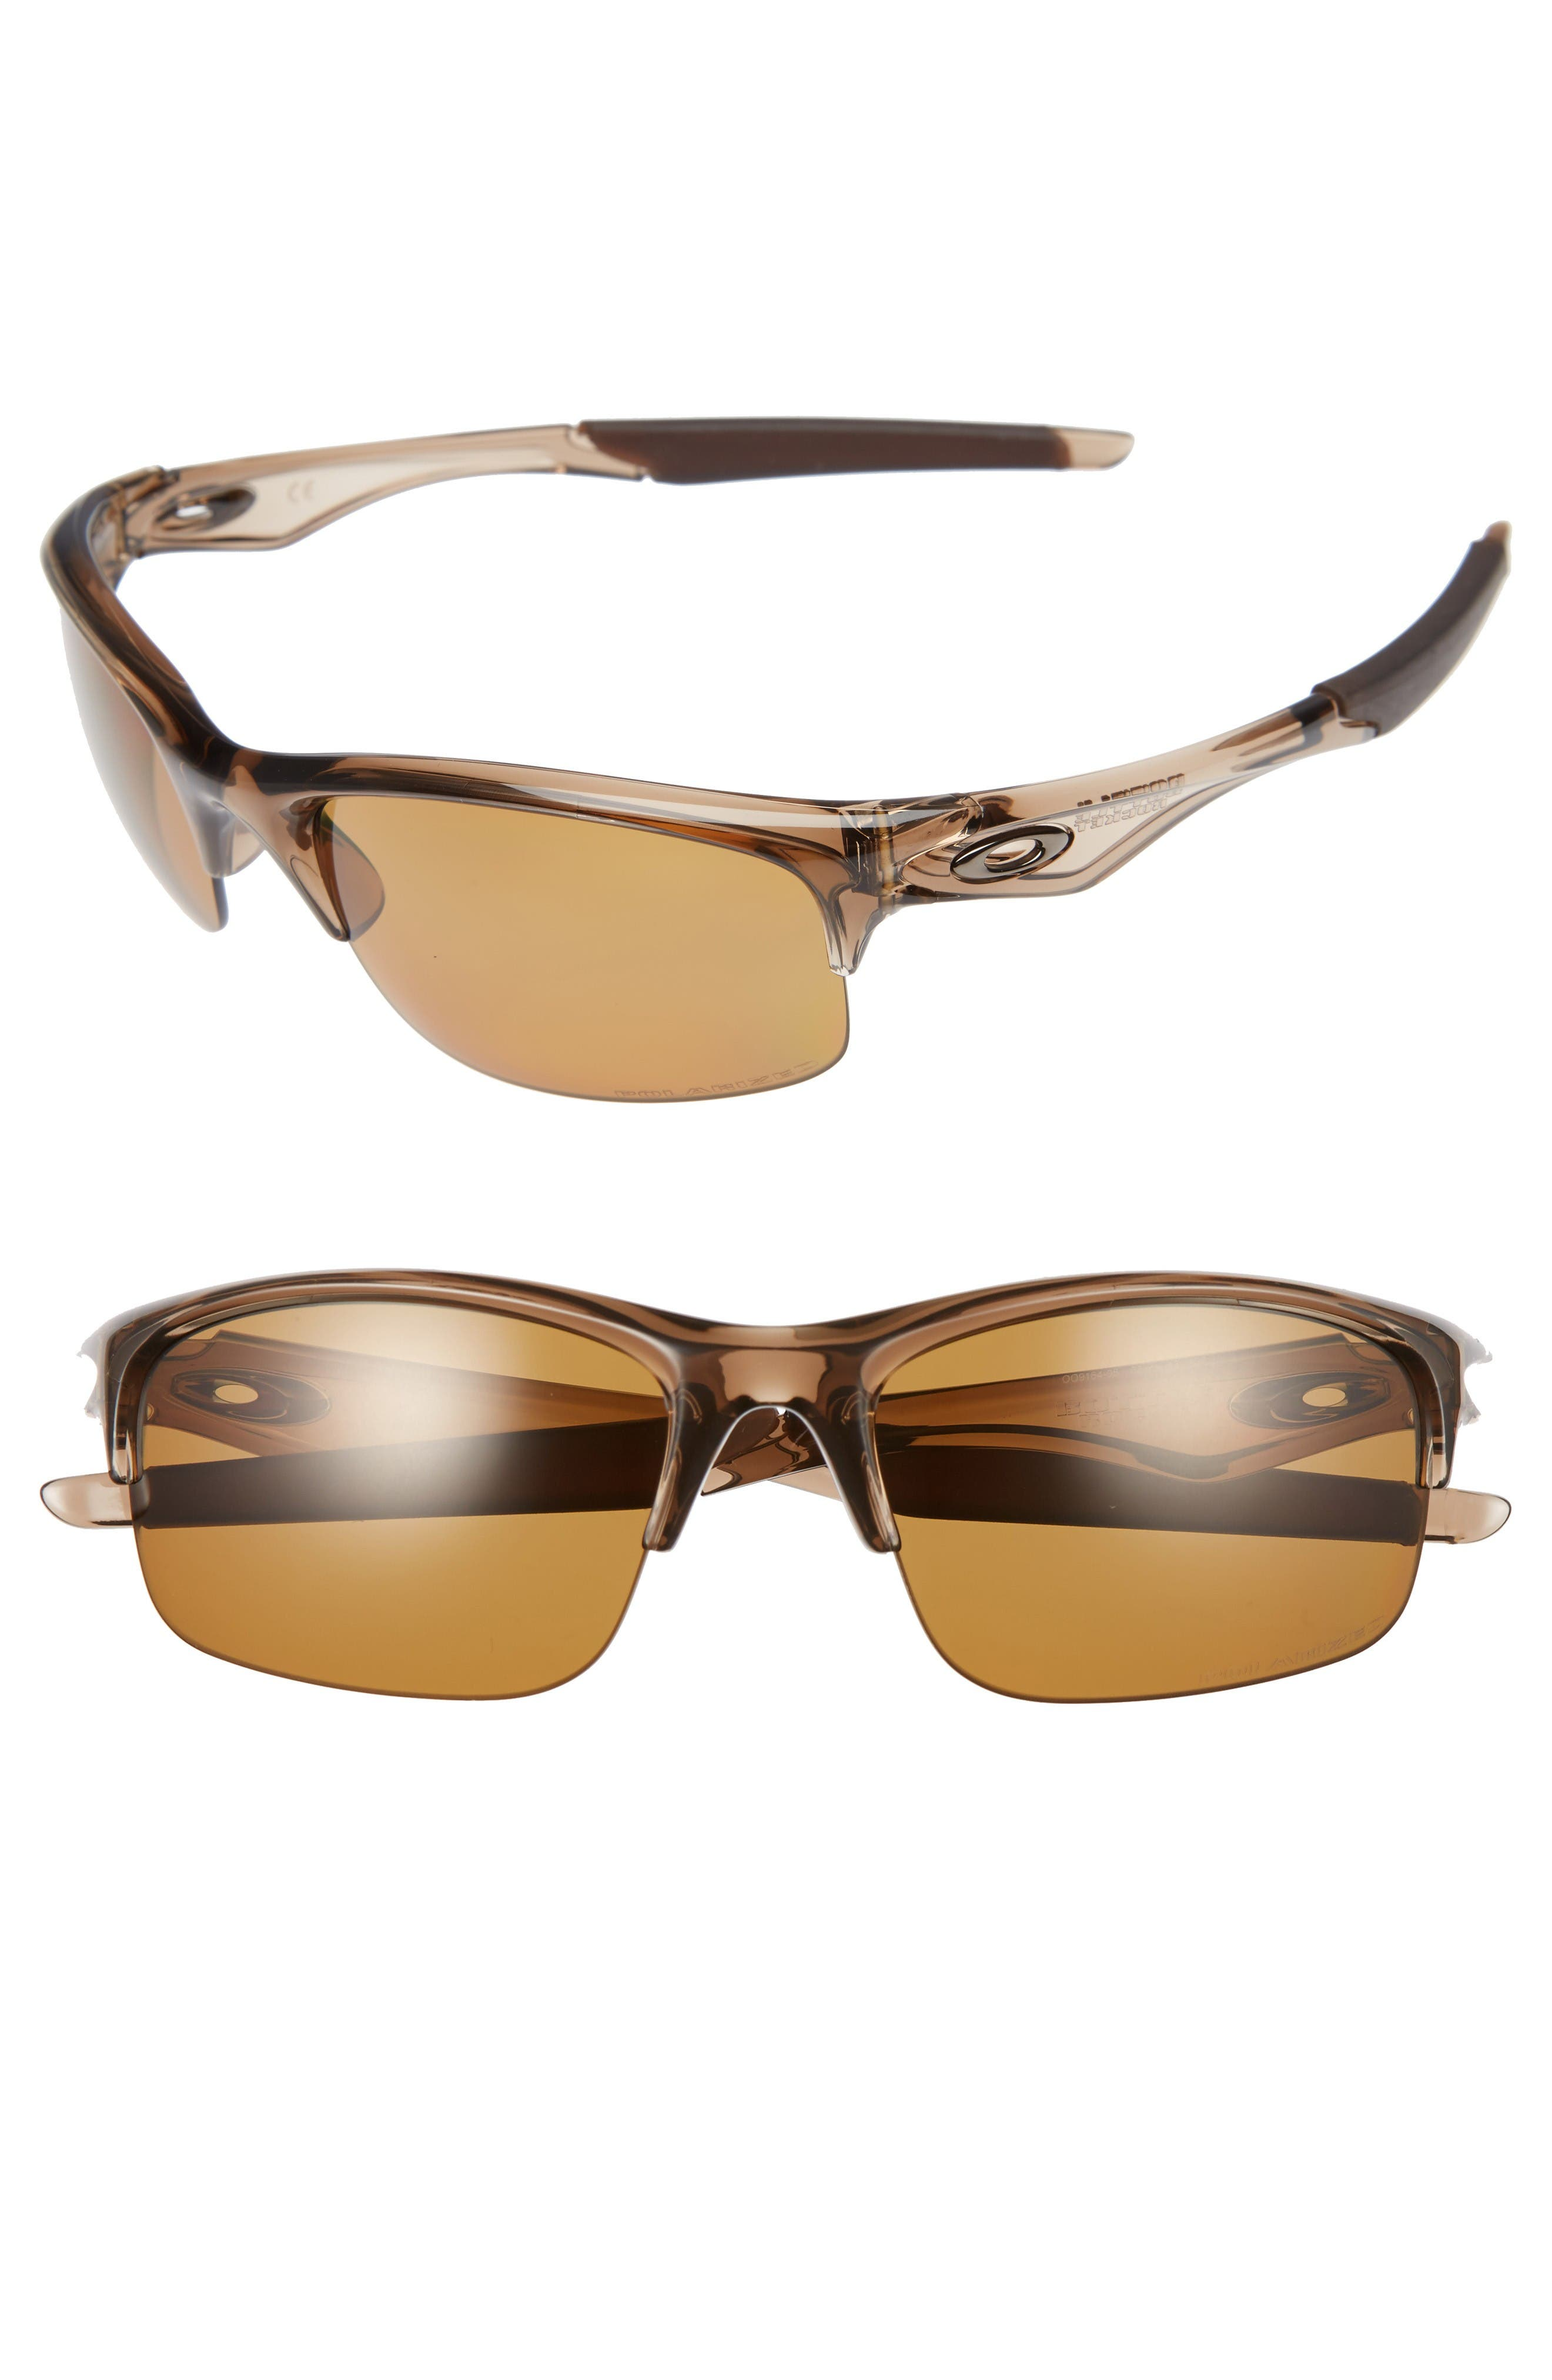 Bottle Rocket 62mm Polarized Sunglasses,                         Main,                         color, Brown